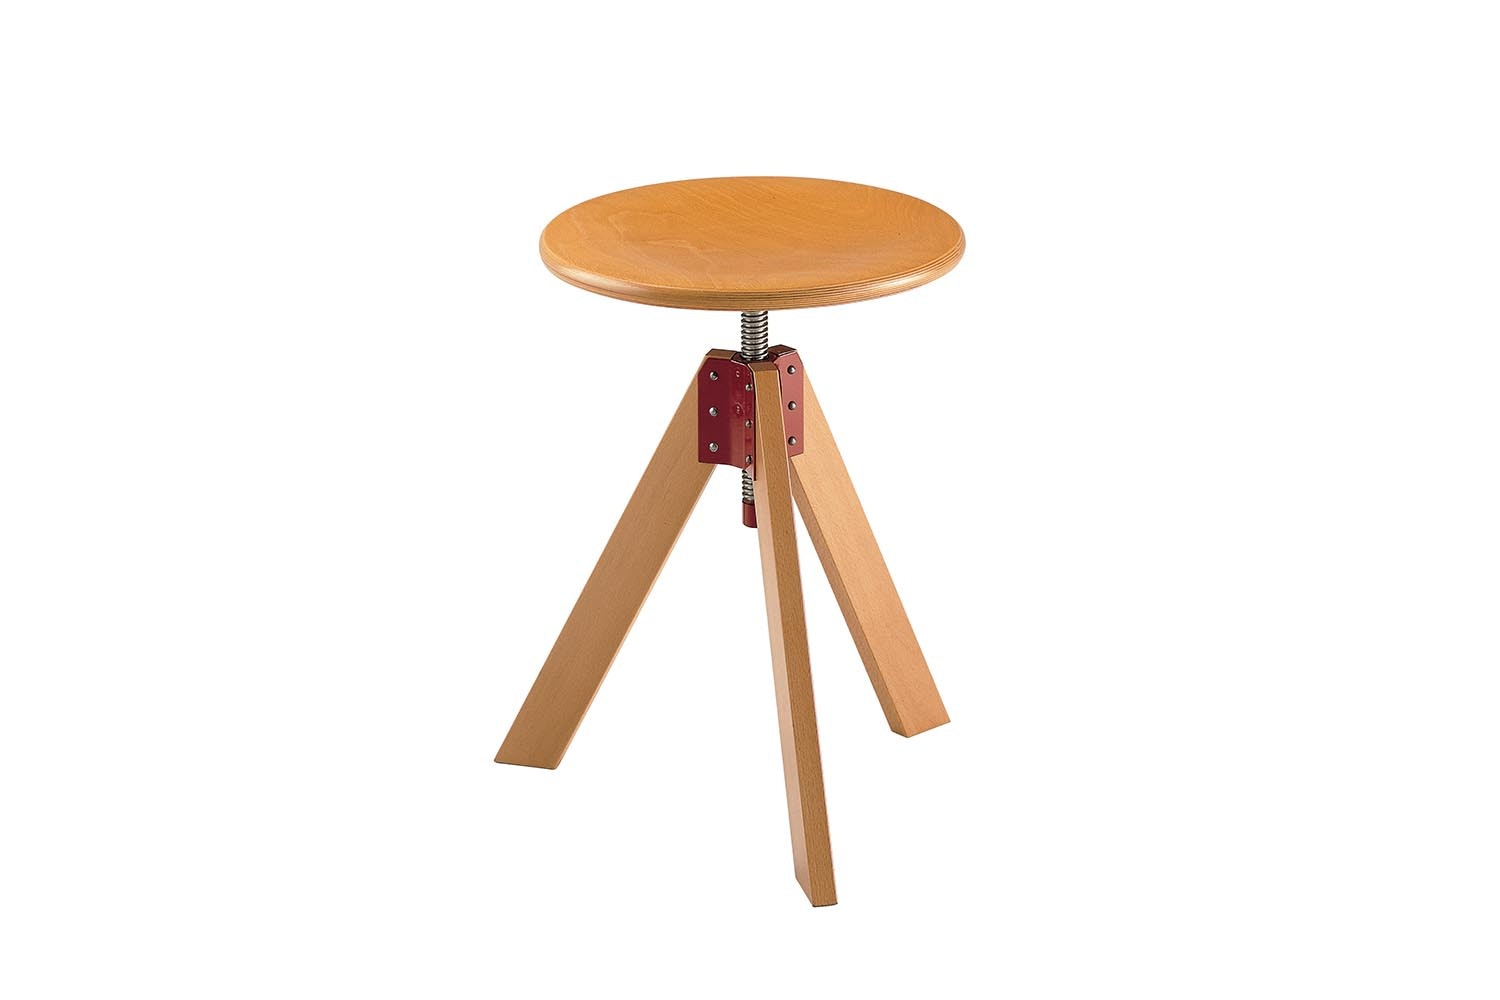 Giotto Stool by De Pas, D'Urbino, Lomazzi for Zanotta